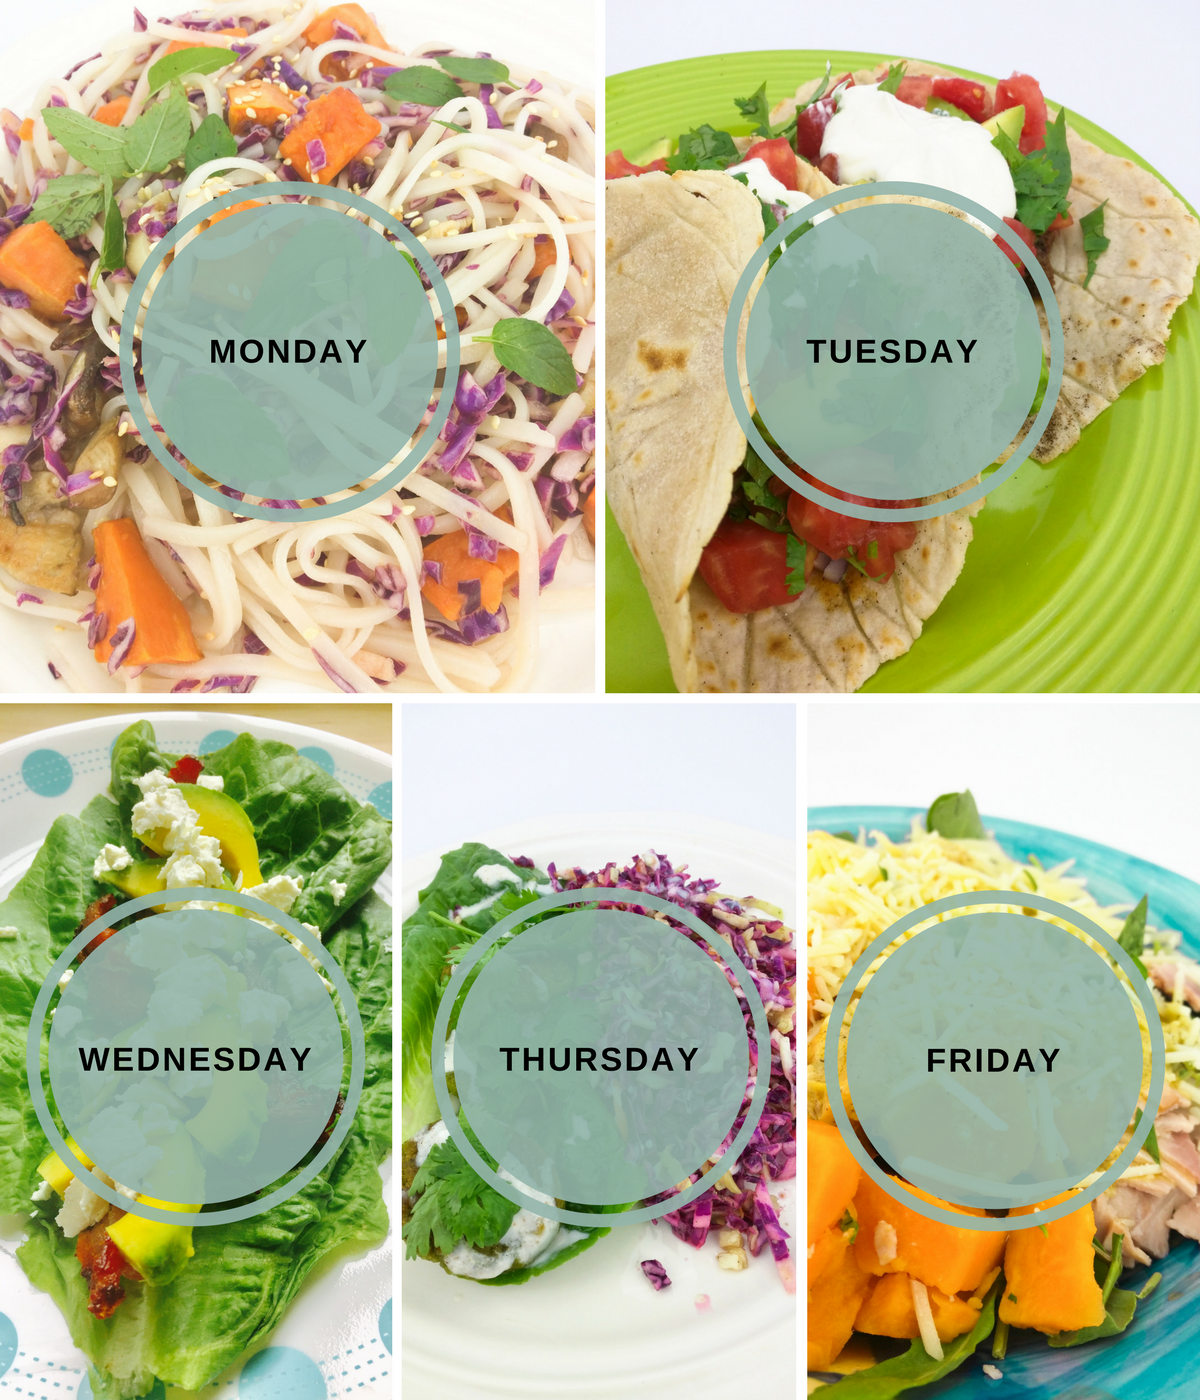 Join Lectin Free Mama's Weeknight Meal Planner and receive 5 free dinner recipes in your inbox every Friday. Recipes are AIP, Paleo, and Plant Paradox compliant with vegan, vegetarian, and keto options!